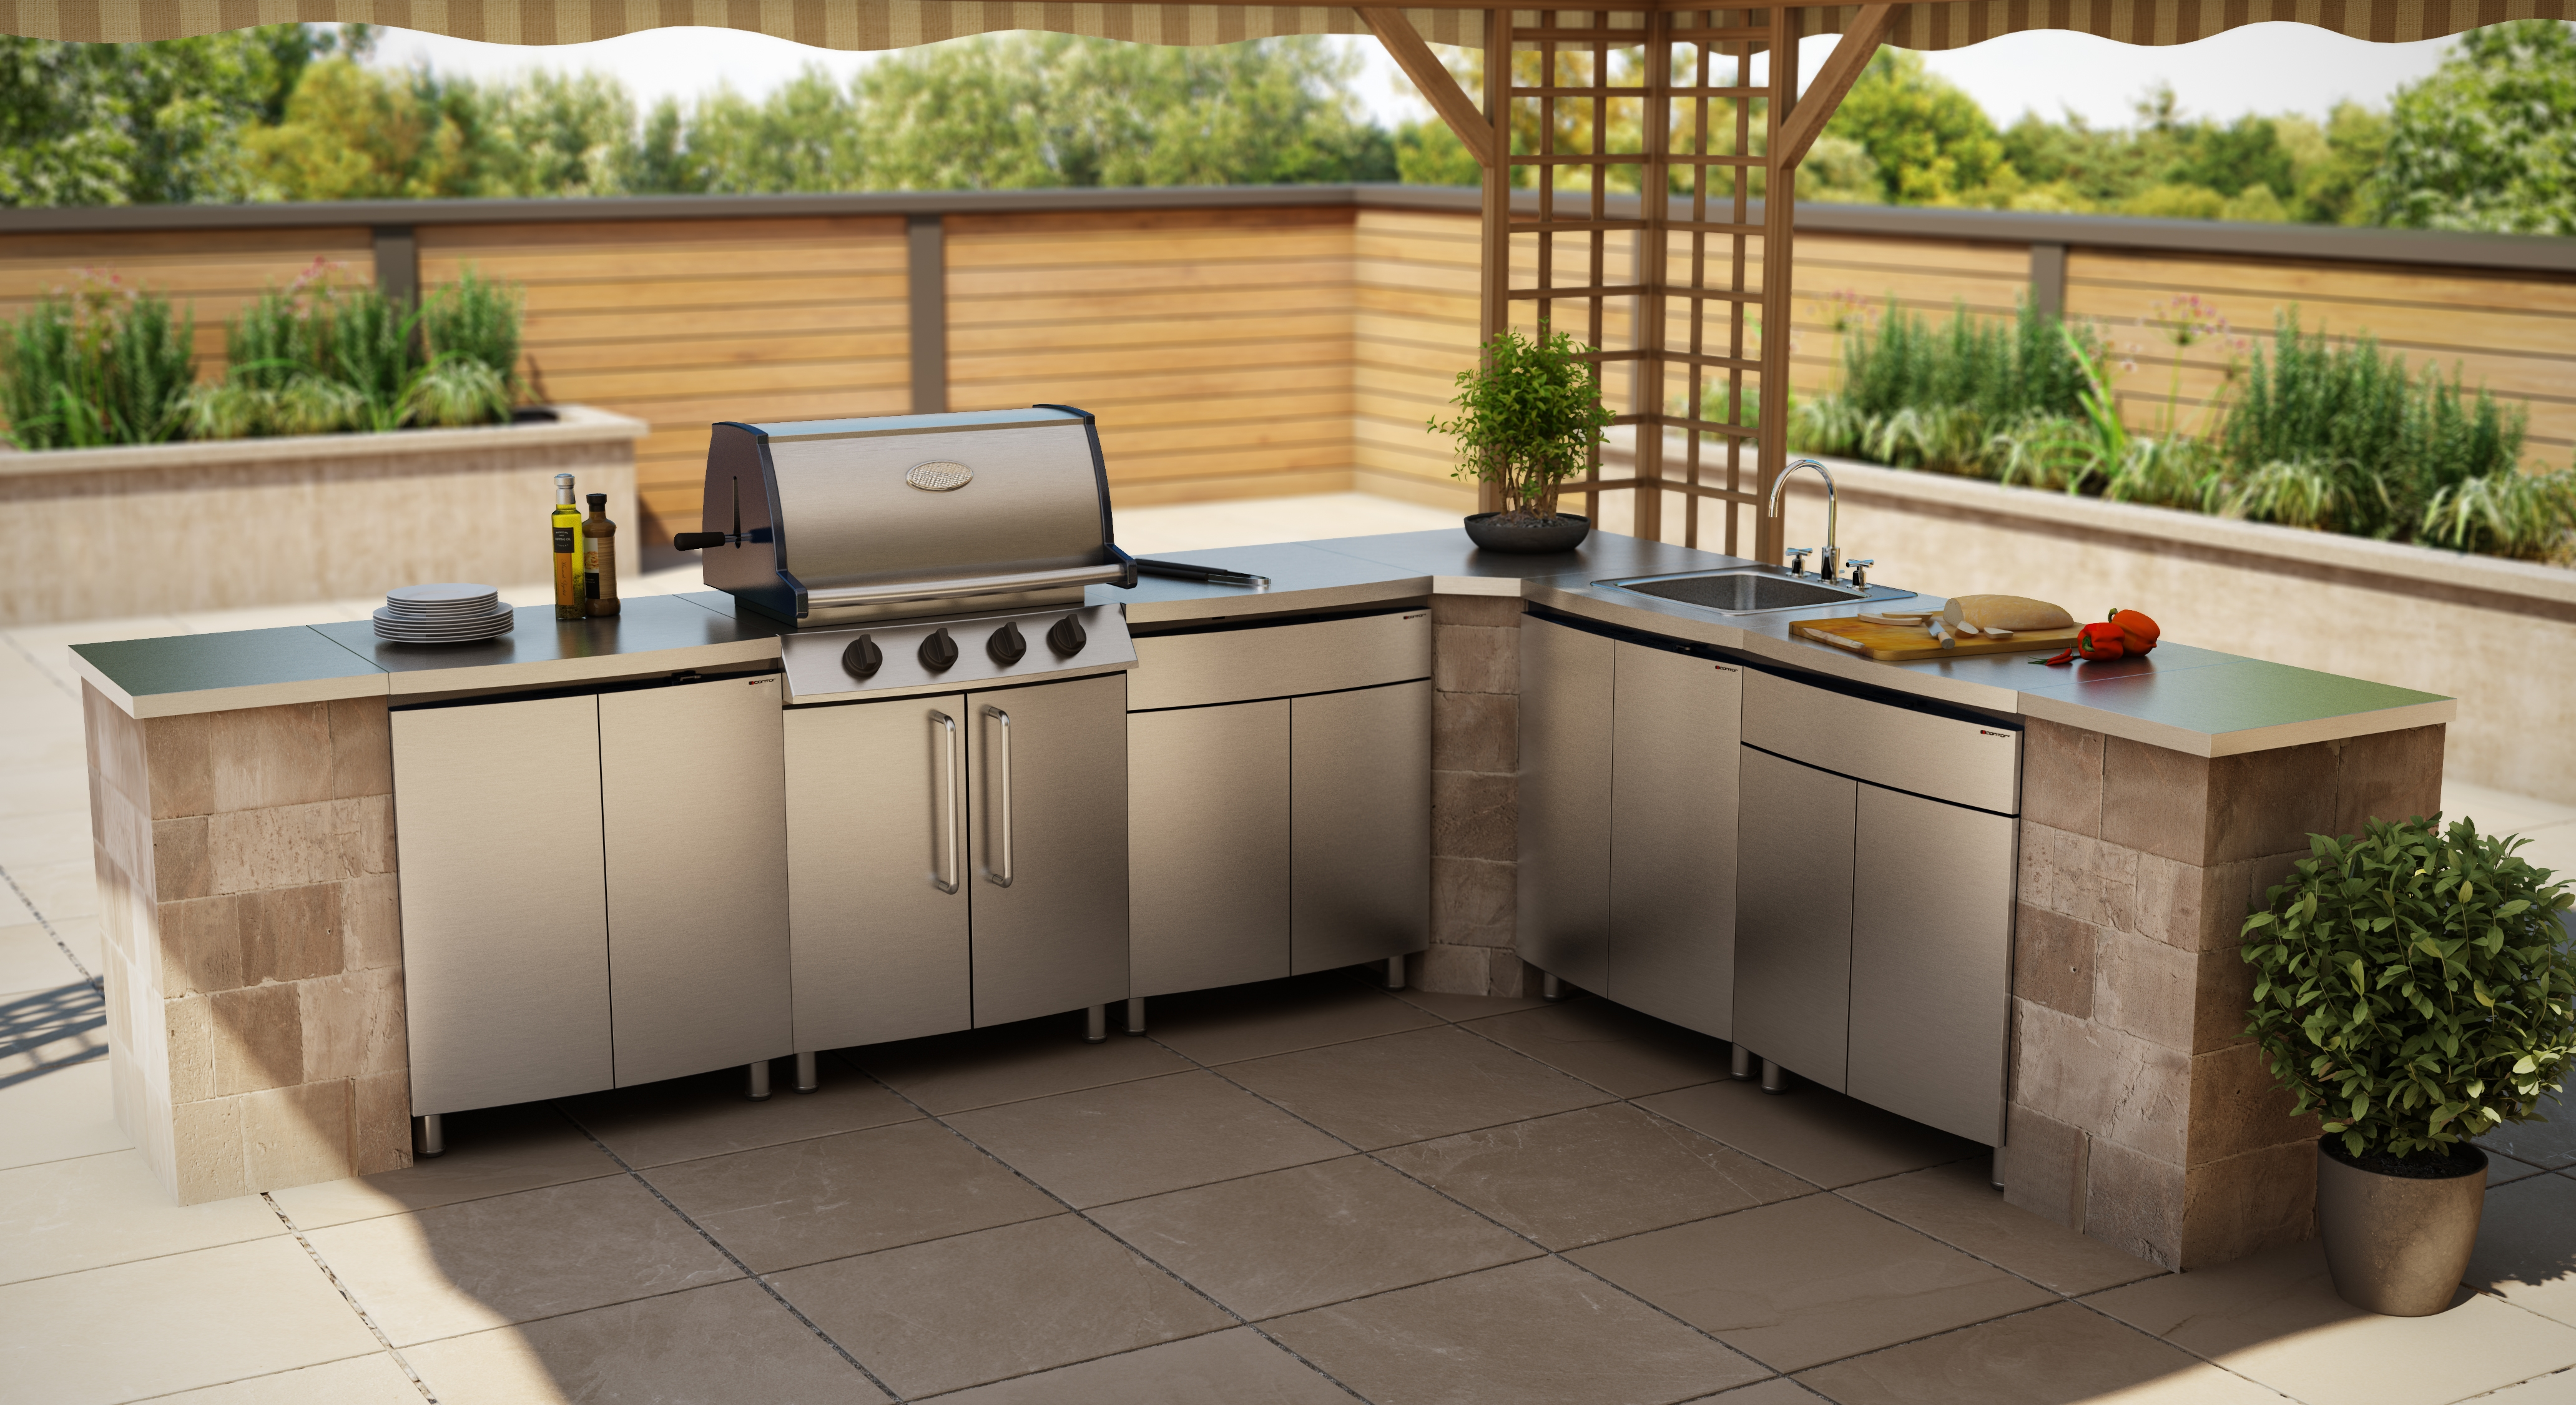 Stainless Steel Exterior Kitchen Cabinets